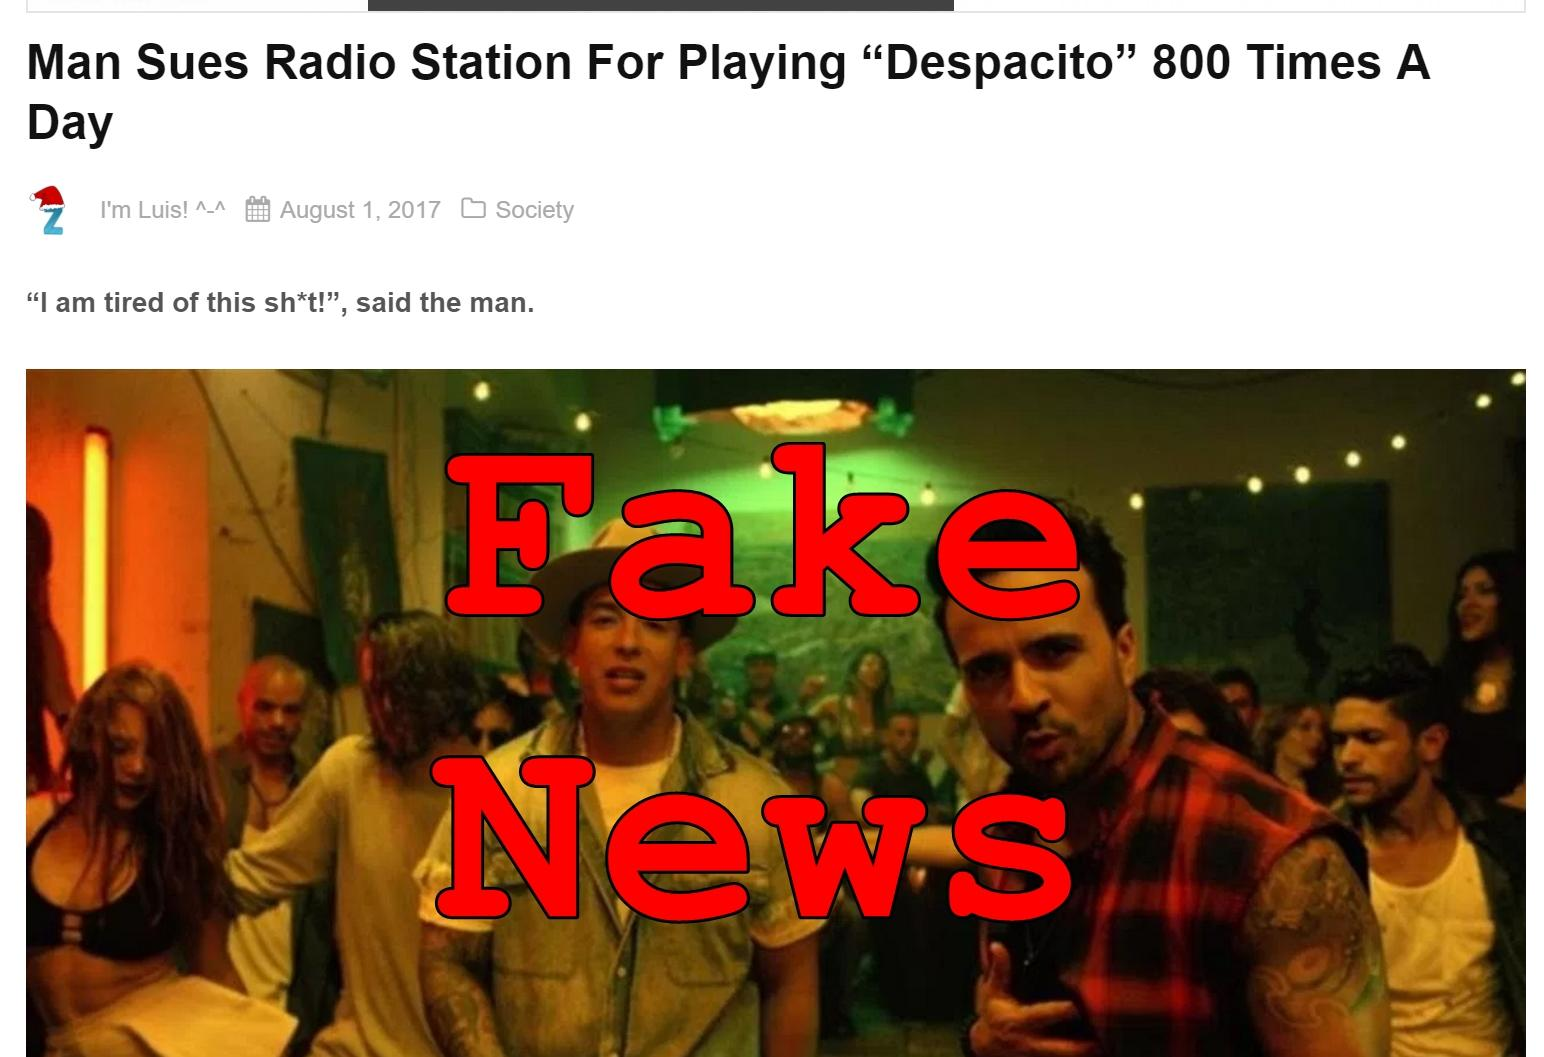 """Fake News: Man Did NOT Sue Radio Station For Playing """"Despacito"""" 800 Times A Day"""